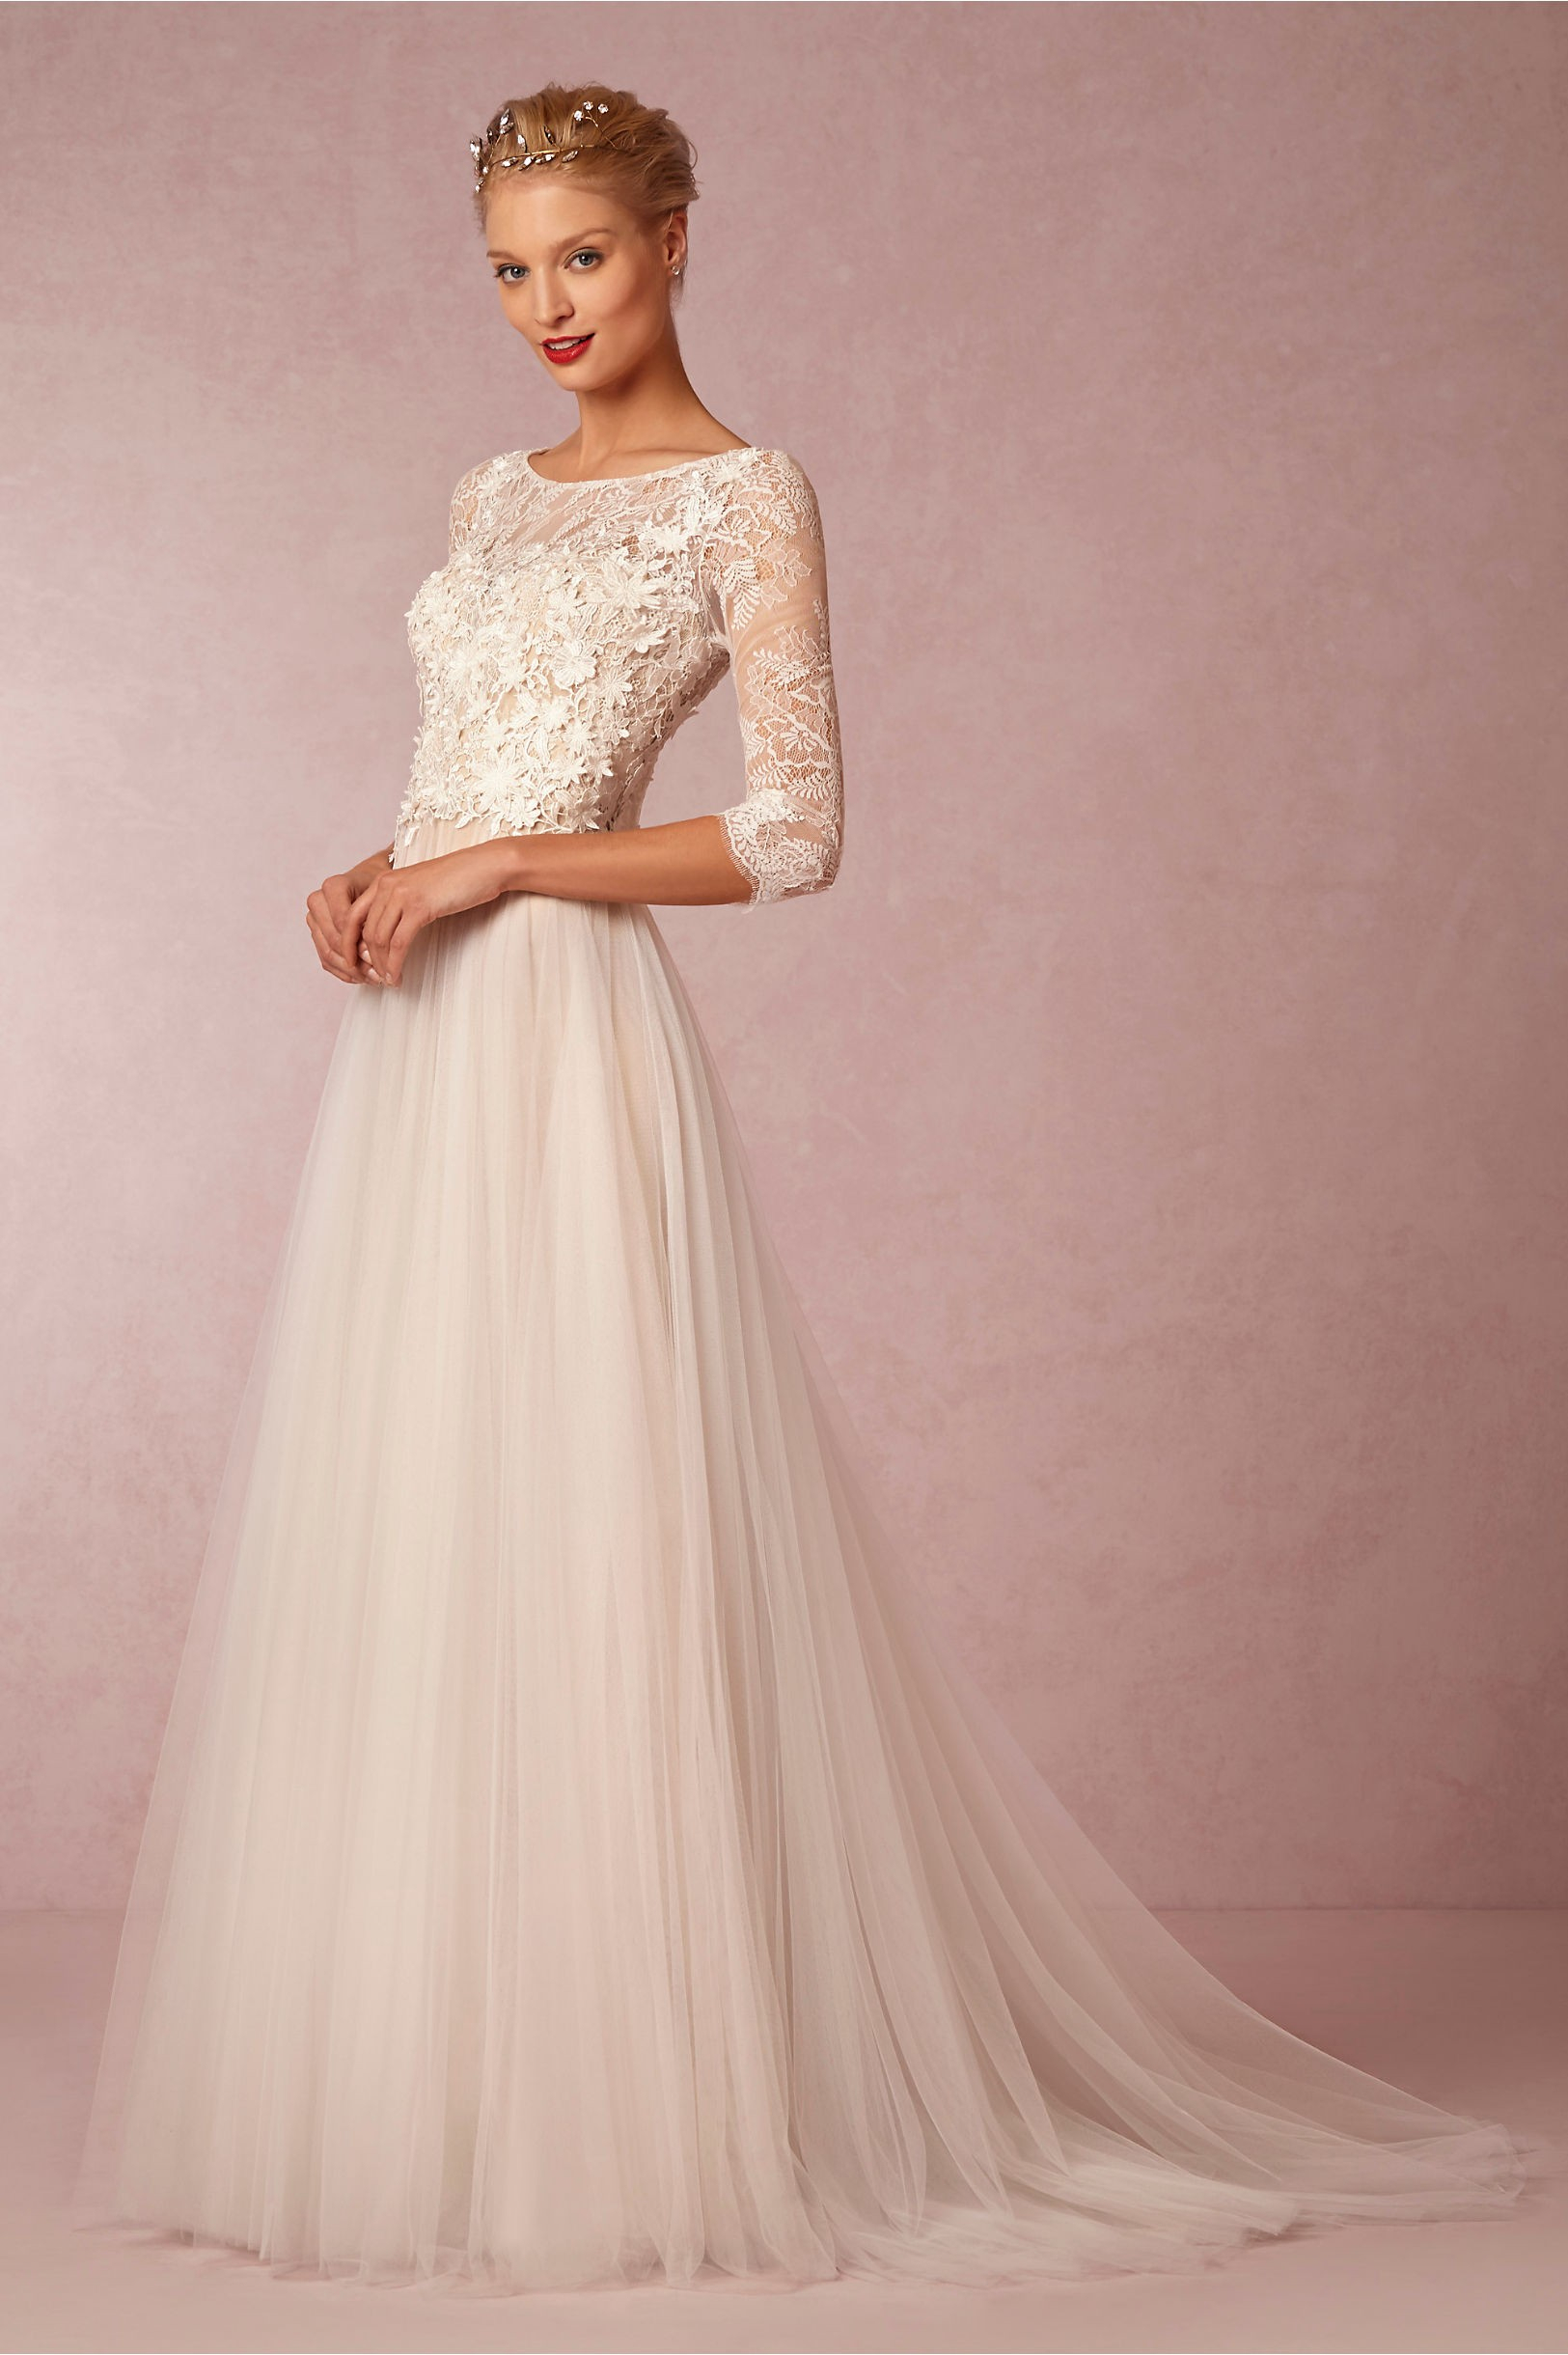 A-line wedding dress with three quarter sleeves